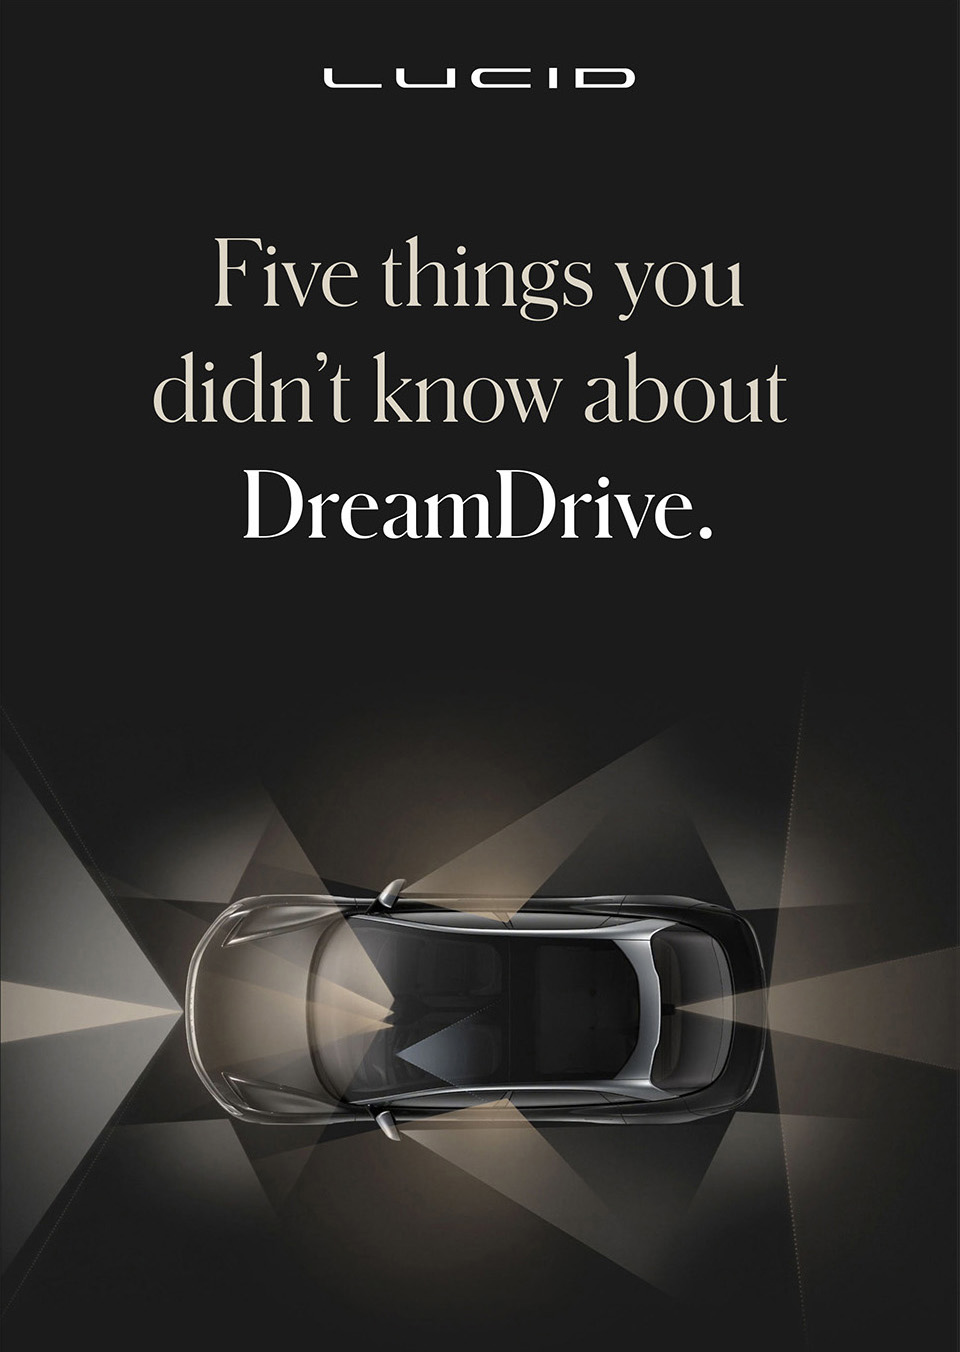 Five things you didn't know about DreamDrive.